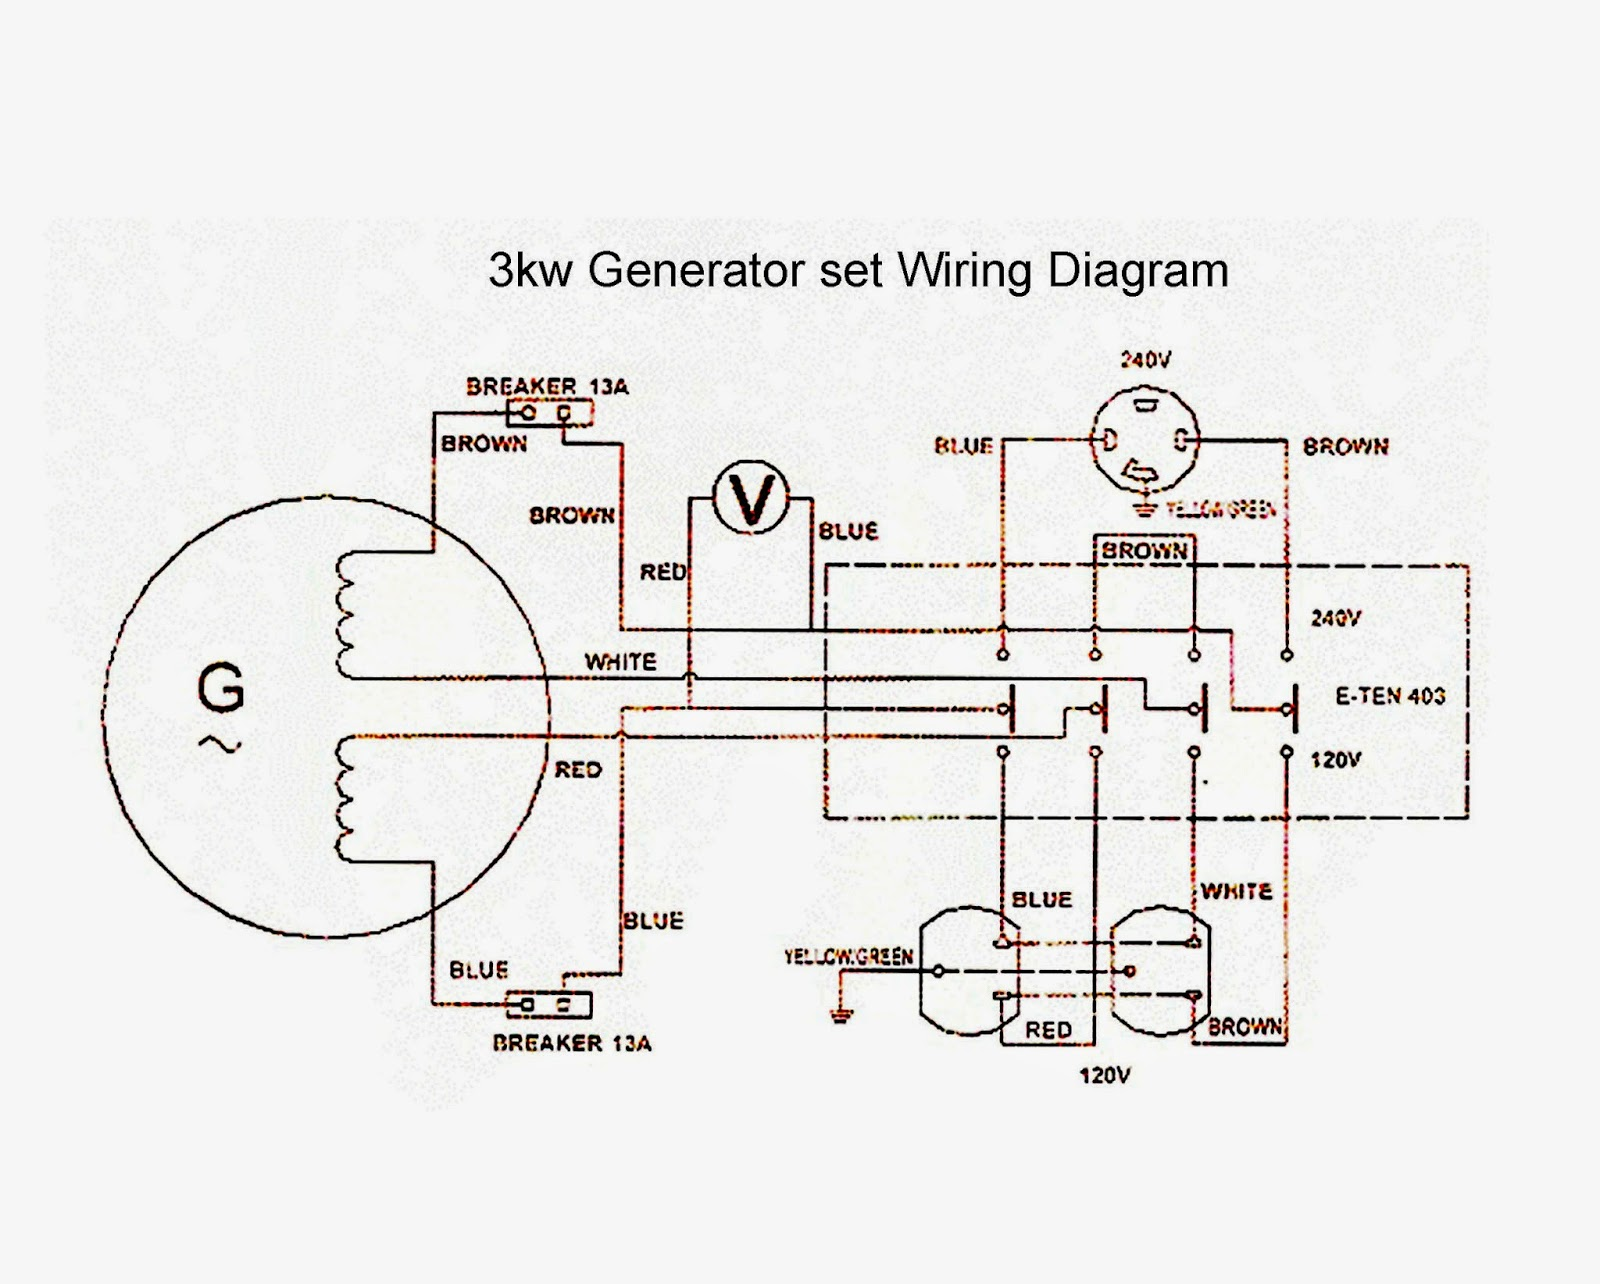 Wiring Diagram For Steam Generator : Car generator wiring diagram get free image about